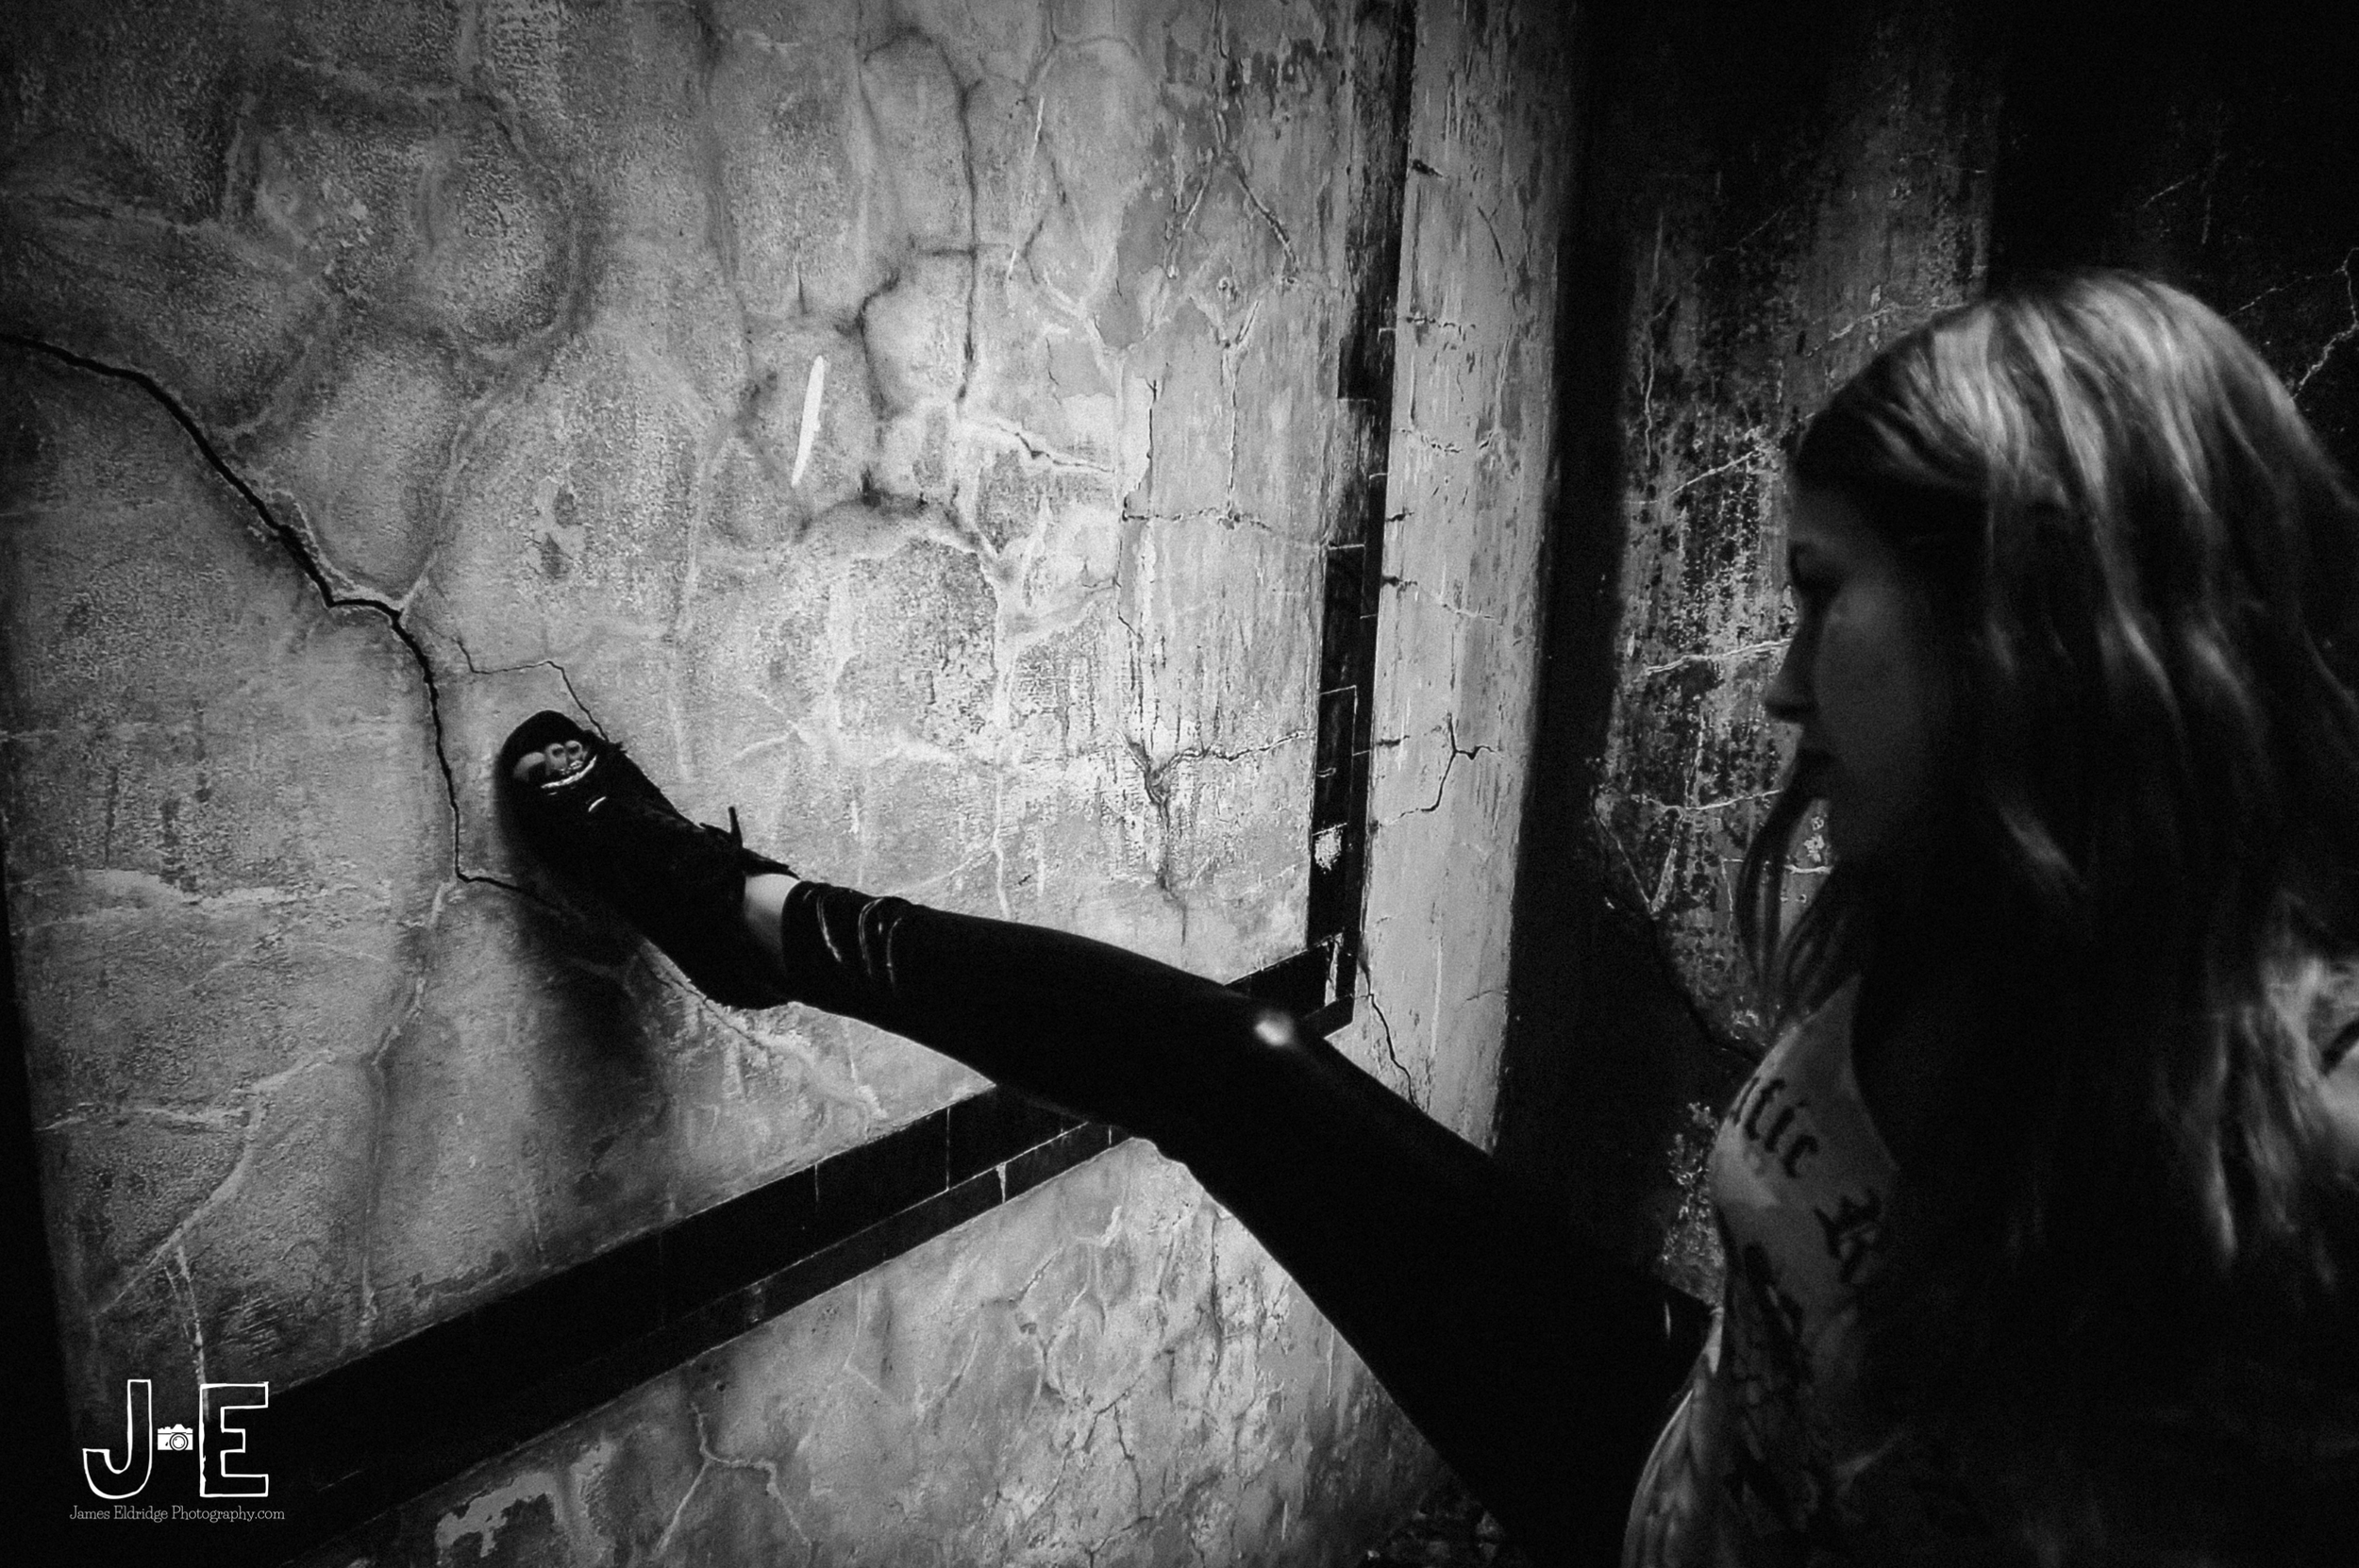 Astra cole cracked wall